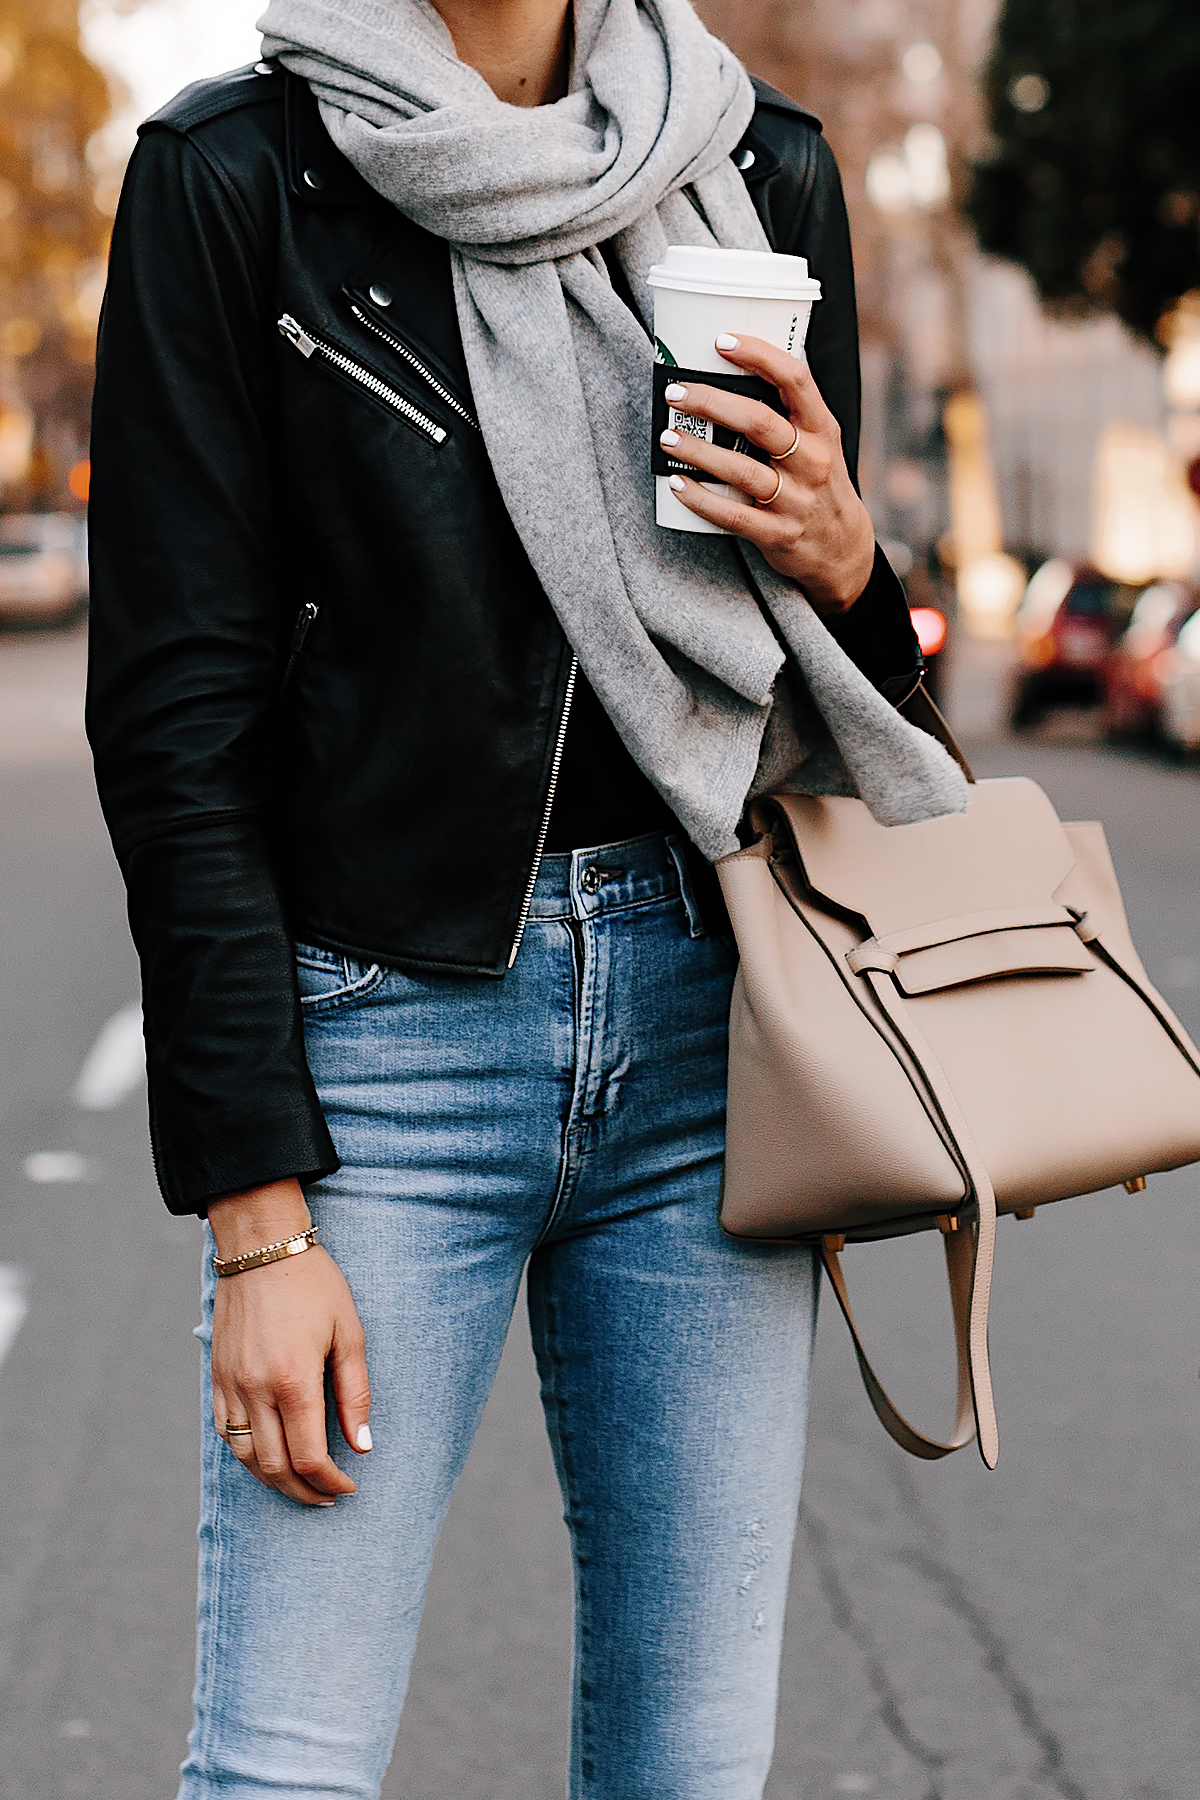 Woman Wearing Club Monaco Black Leather Jacket Grey Scarf Denim Skinny Jeans Celine Mini Belt Bag Fashion Jackson San Diego Fashion Blogger Street Style